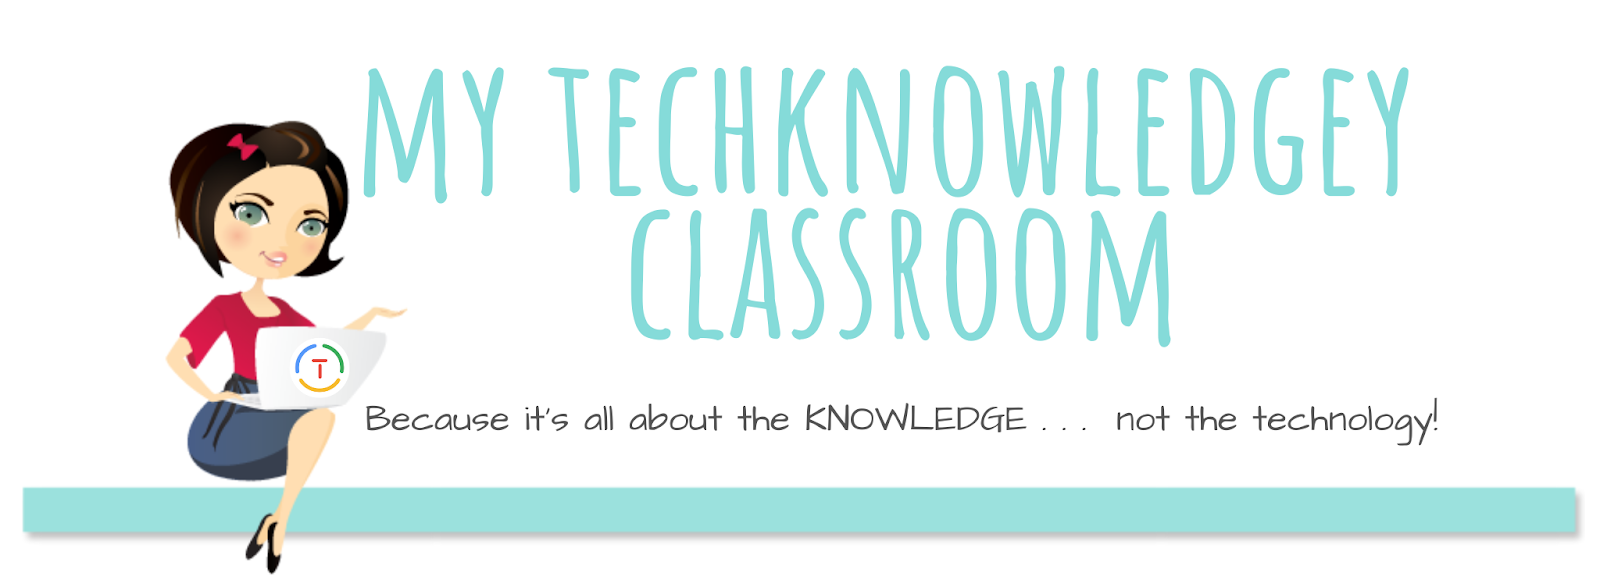 My TechKNOWLEDGEy Classroom